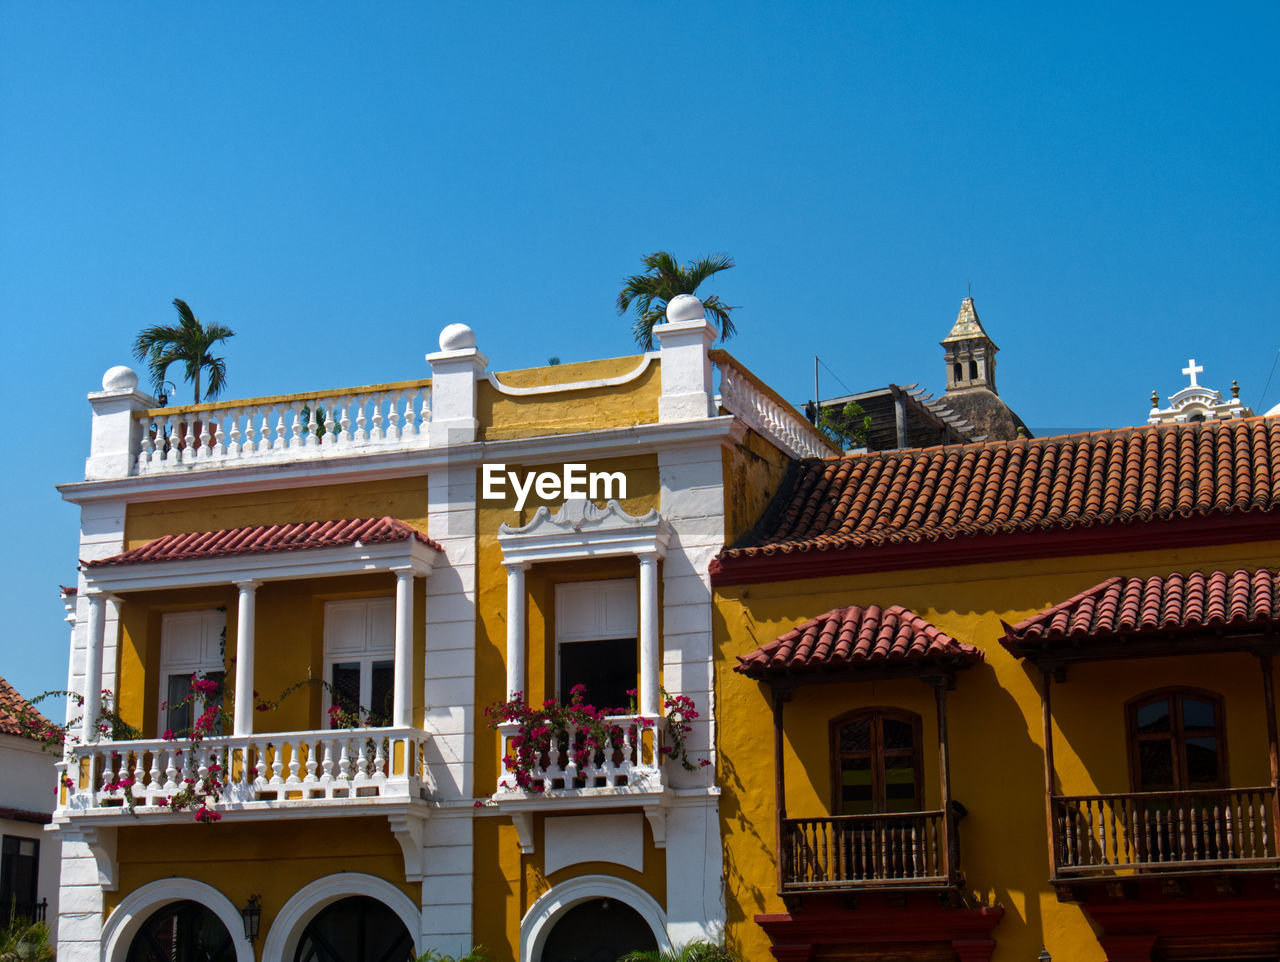 Colonial and republican architecture  styles in the old city of cartagena, colombia